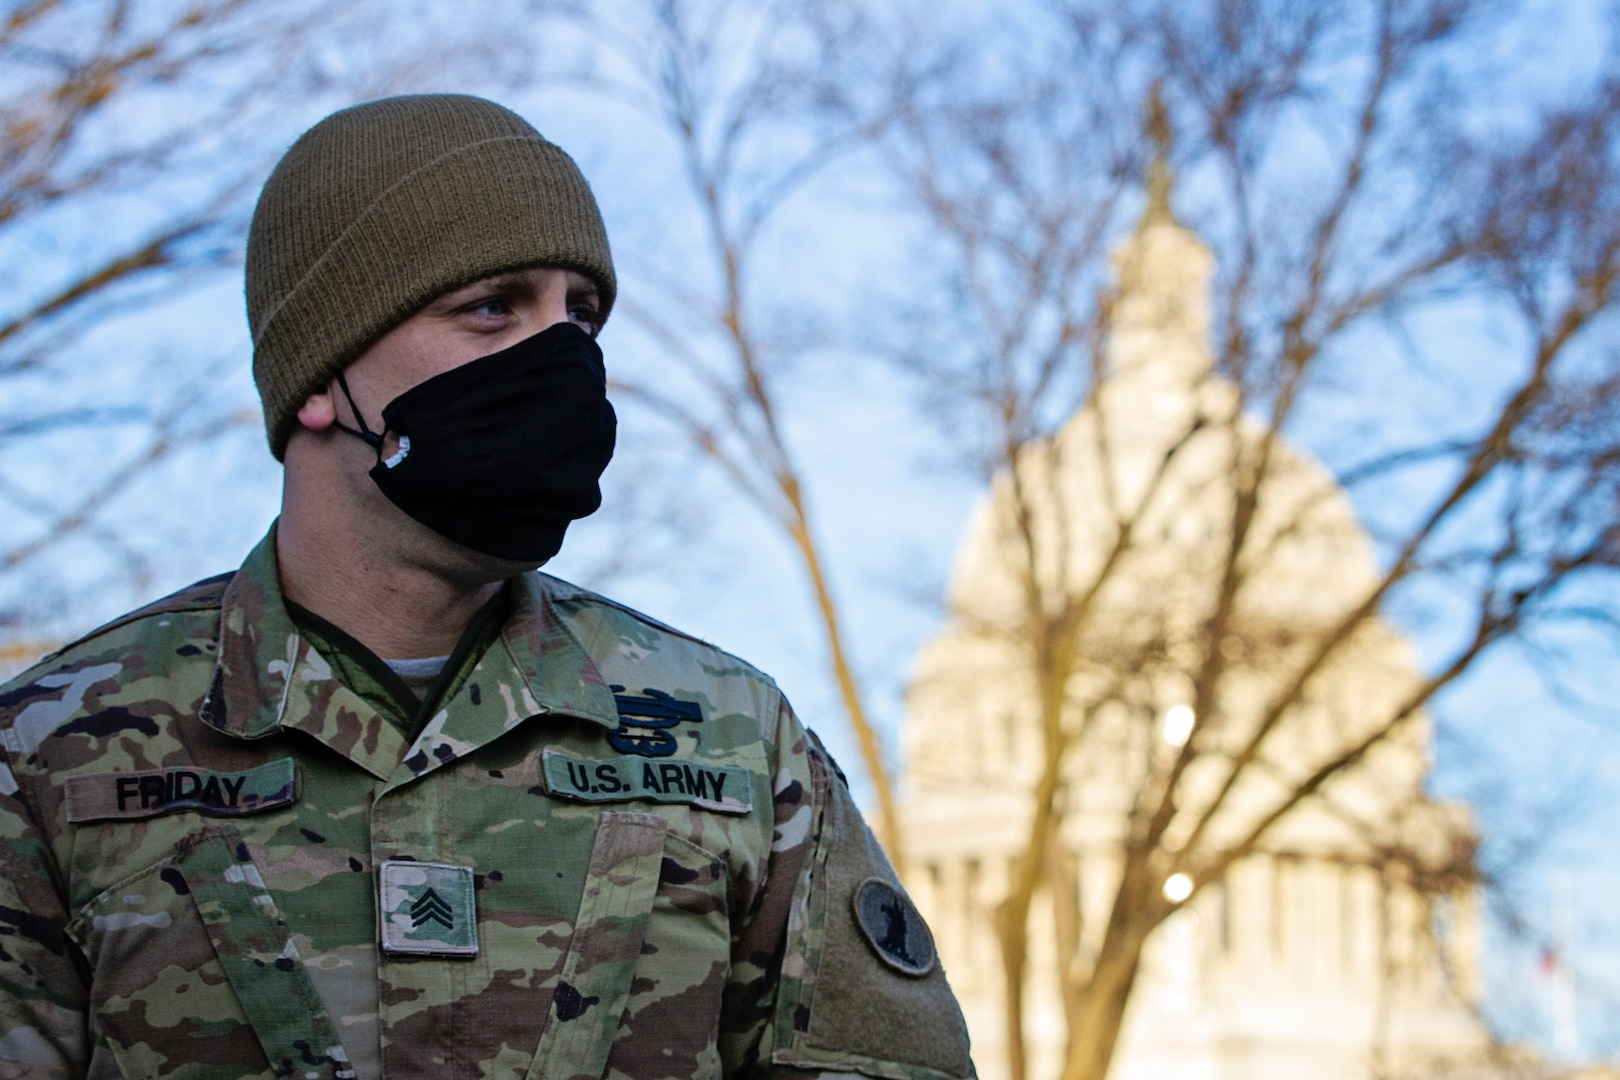 A member of the Delaware National Guard stands watch near the U.S. Capitol in Washington, D.C., Jan. 9, 2021. National Guard Soldiers and Airmen from several other states have traveled to the District of Columbia to support federal and D.C. authorities leading up to the 59th presidential inauguration.